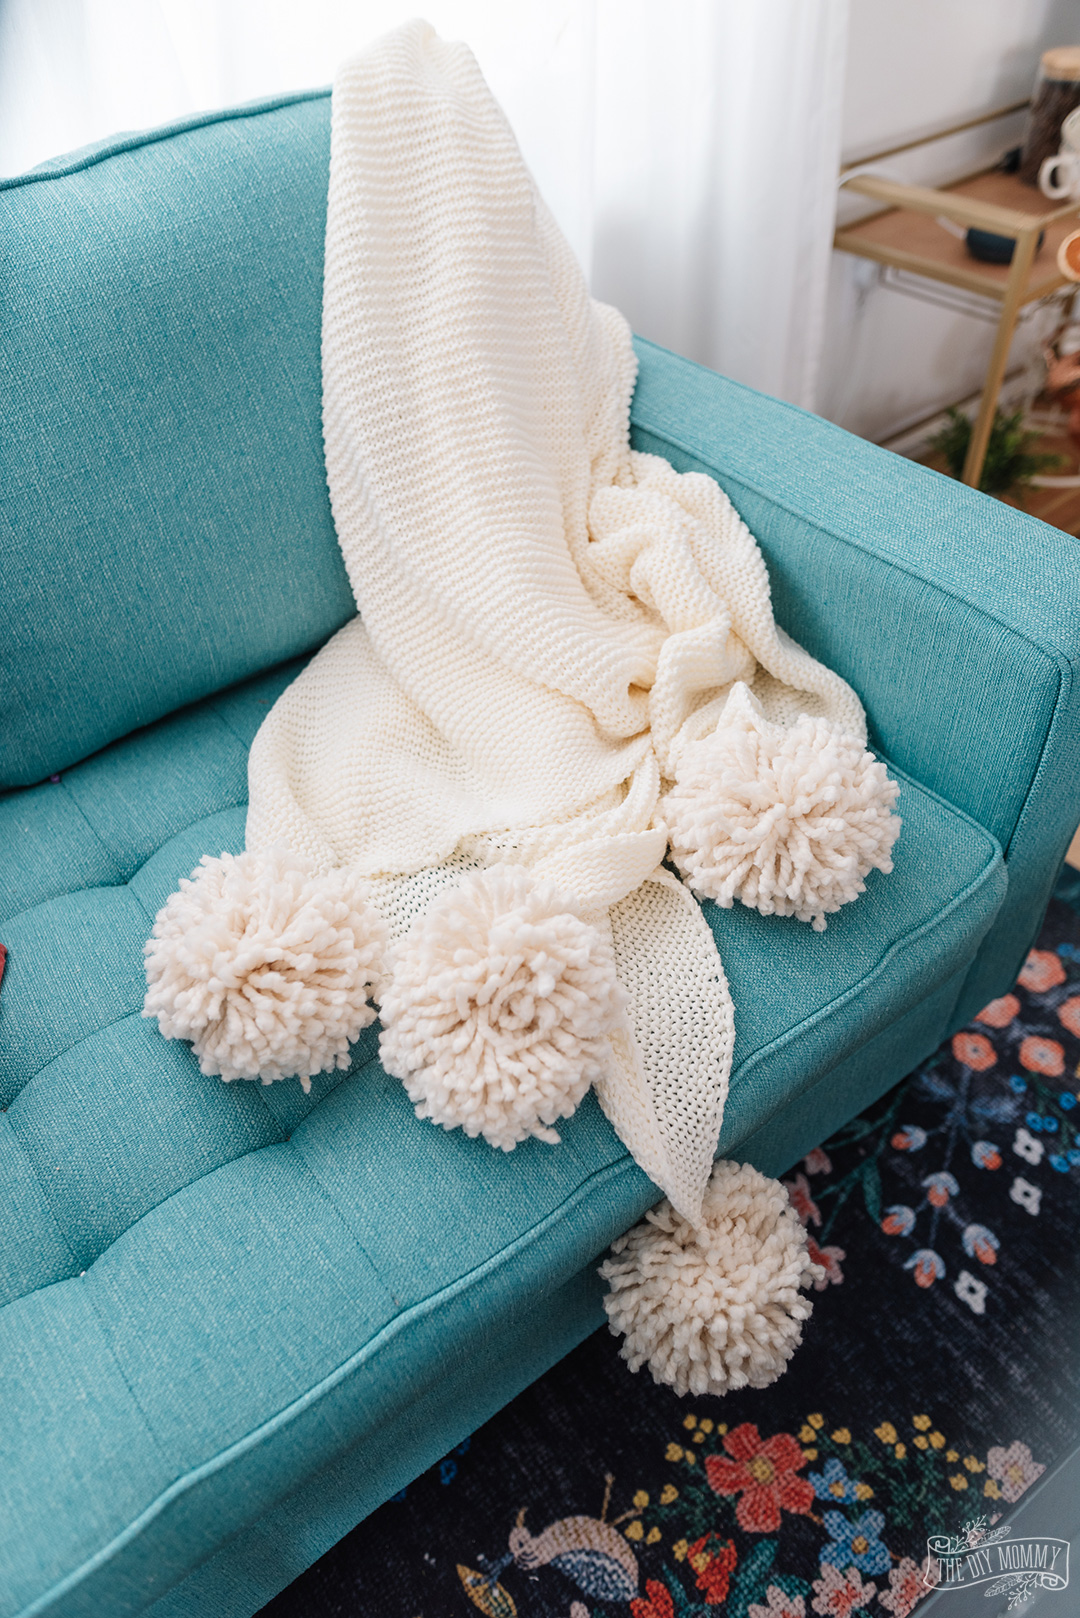 IKEA hack: pom-pom throw blanket!